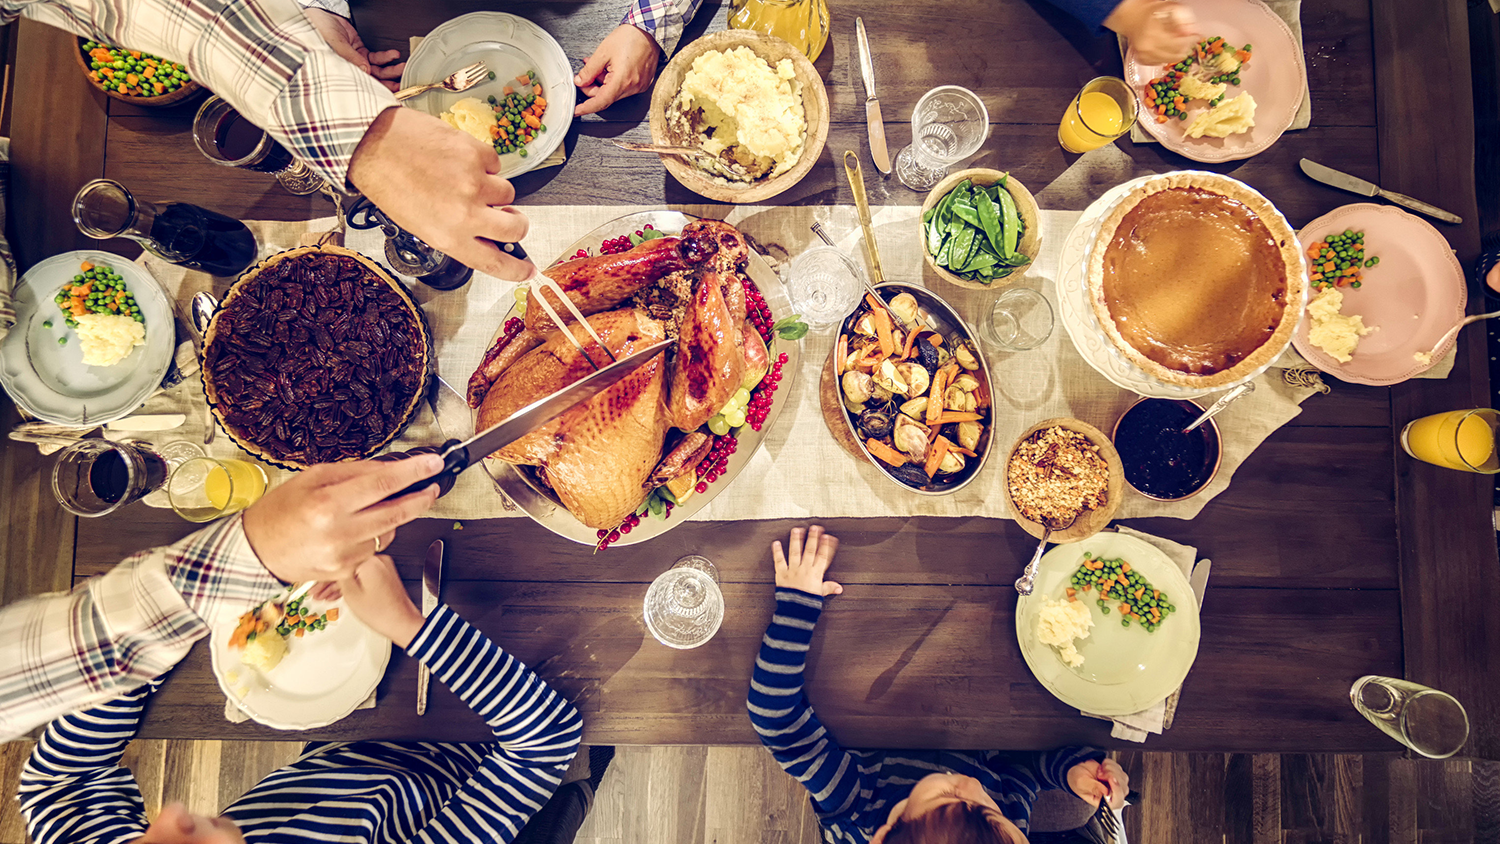 thanksgivingtable-blog-111918